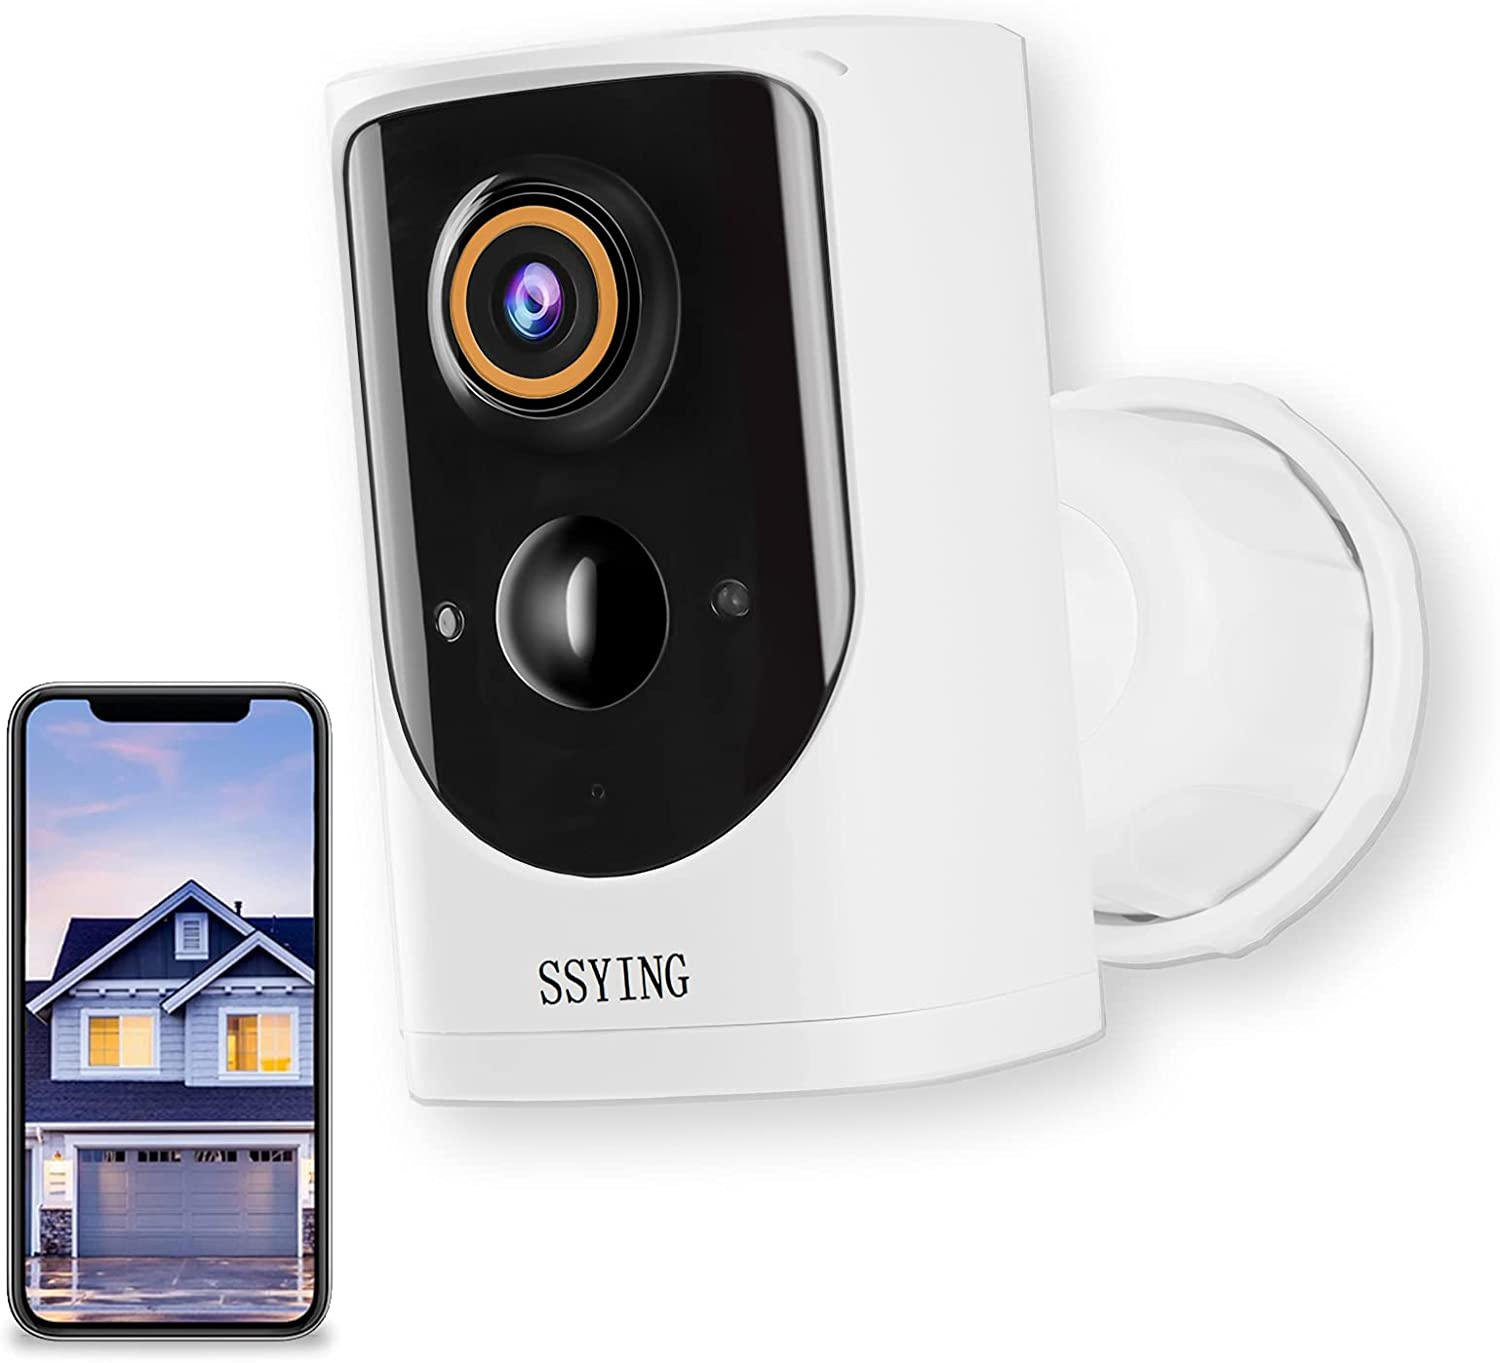 1080P Battery Home Security Camera System, Wire-Free Outdoor Security Camera System, Security Camera Outdoor Wireless WiFi, IP65 Waterproof, HD Night Vision,2-Way Audio(for iOS and Android) (White)